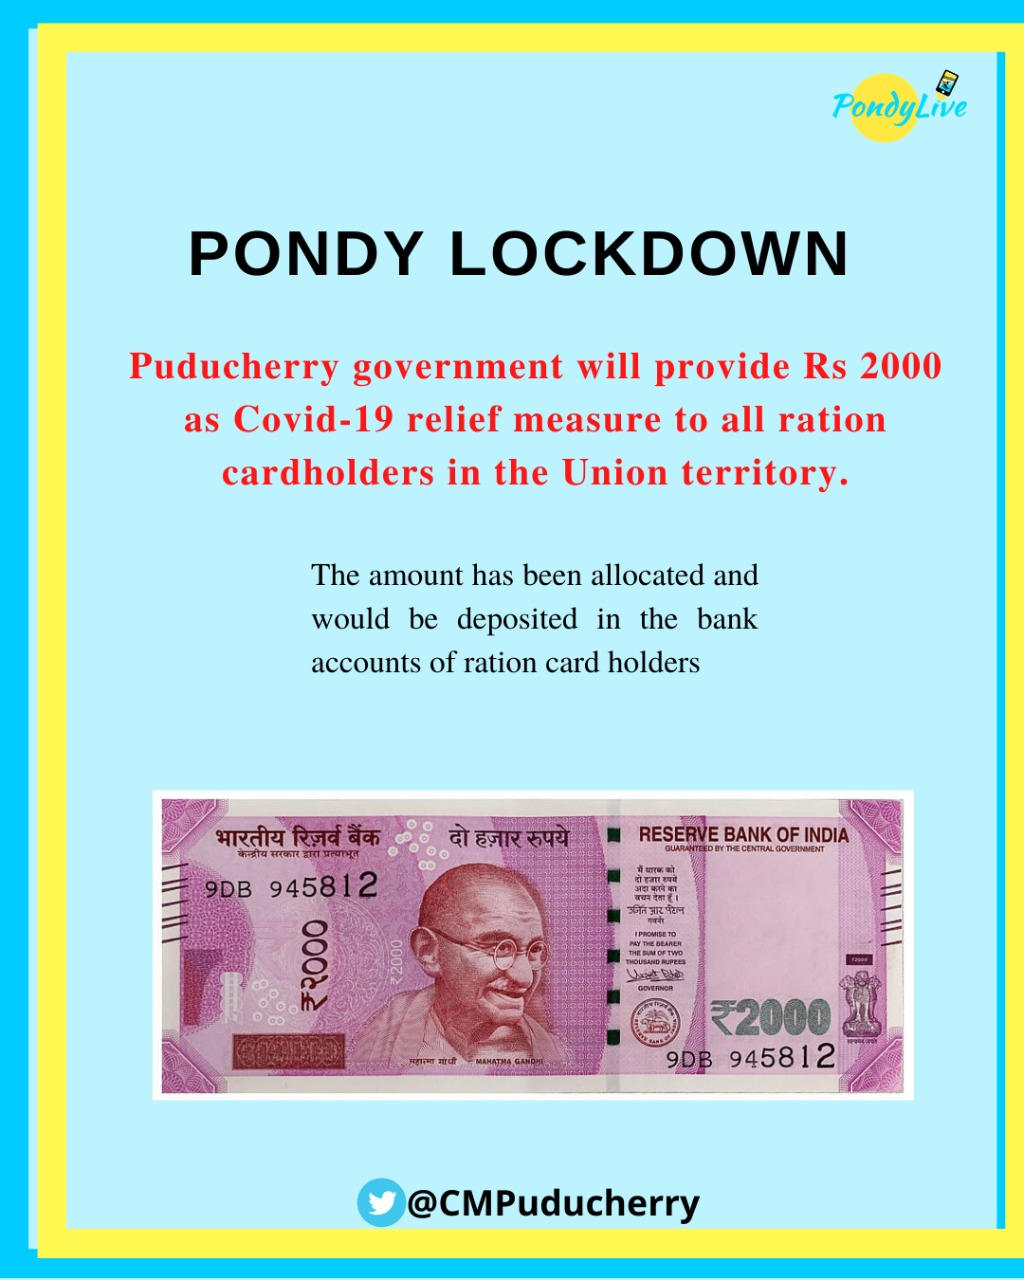 PUUCHERRY GOVERNMENT GIVES RS 200 0 TO ALL RATION CARD HOLDERS AS CORONA RELIEF FUND